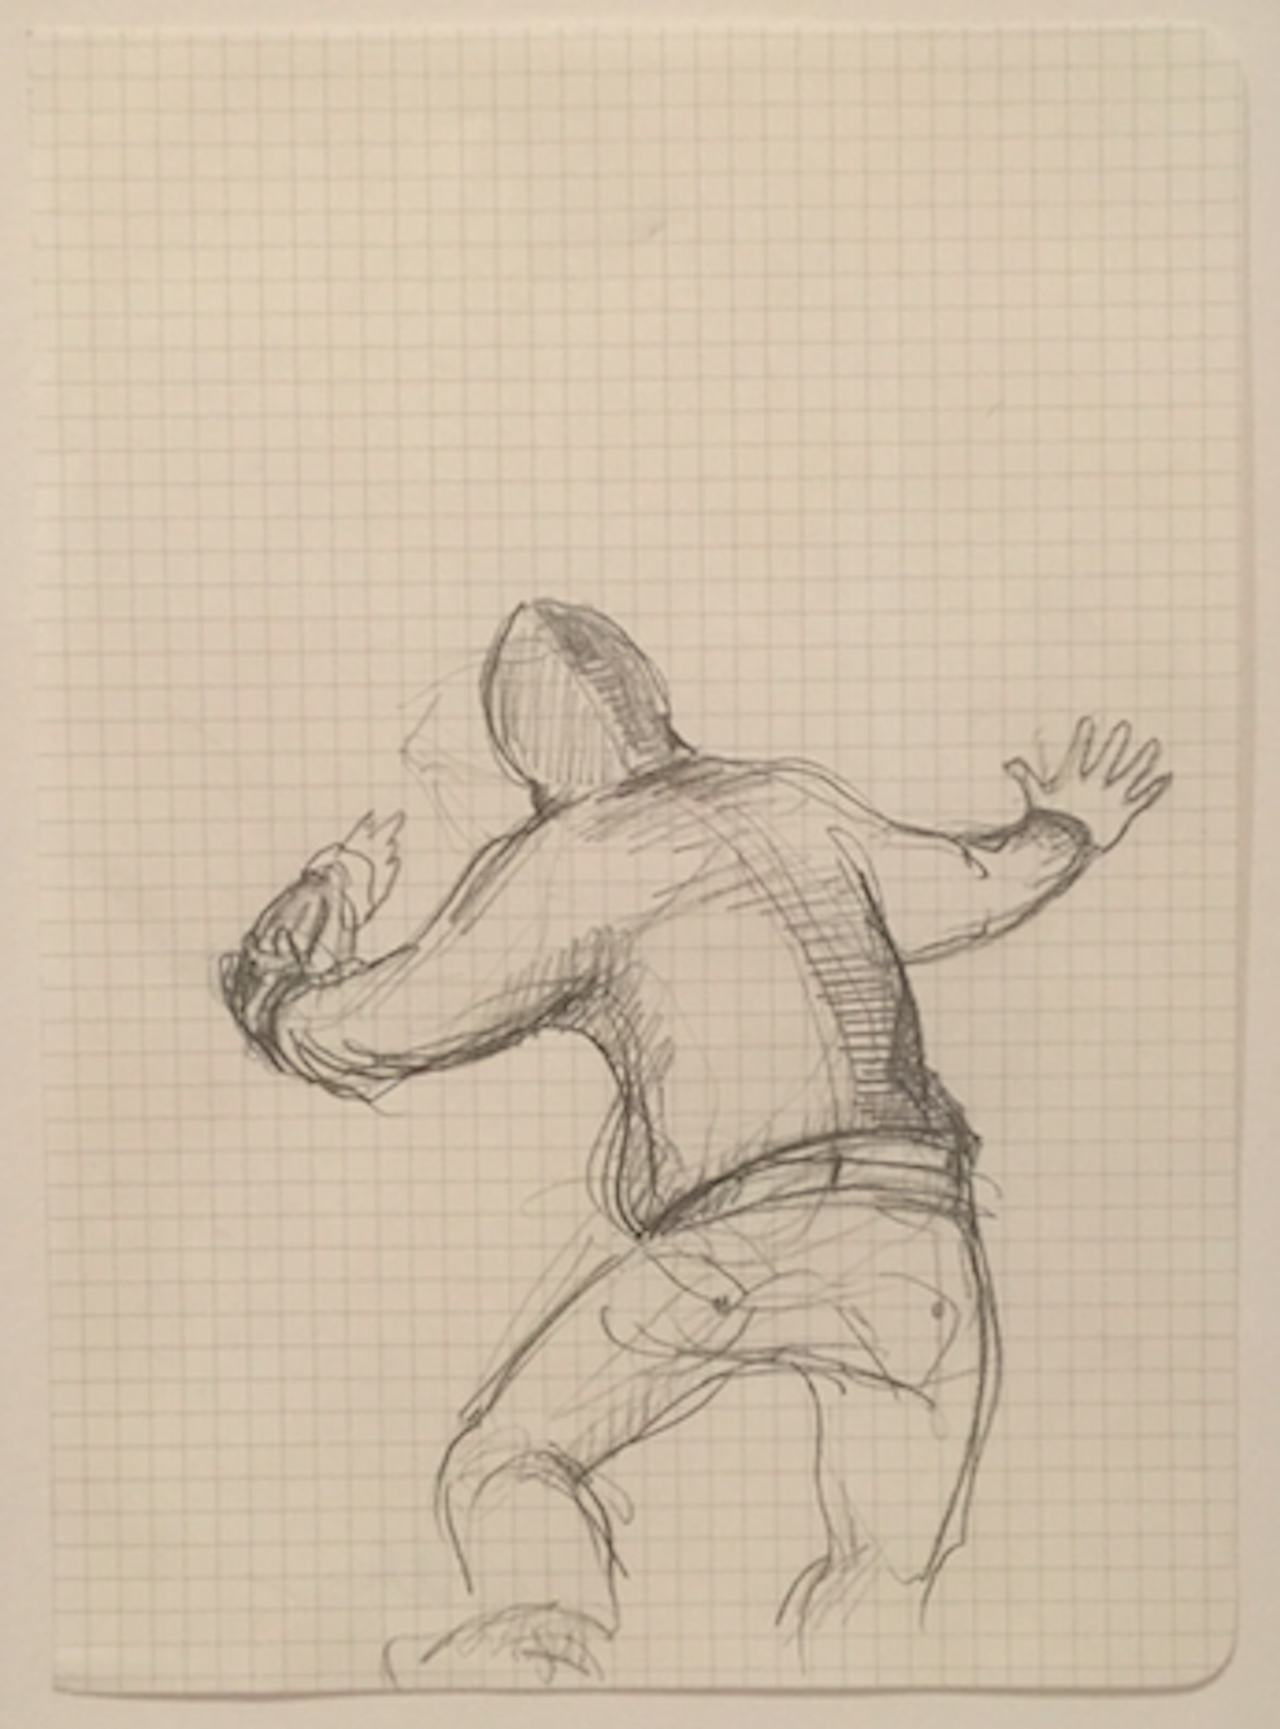 Small pencil drawing on grid paper, showing a figure about to thrown something (click to enlarge)